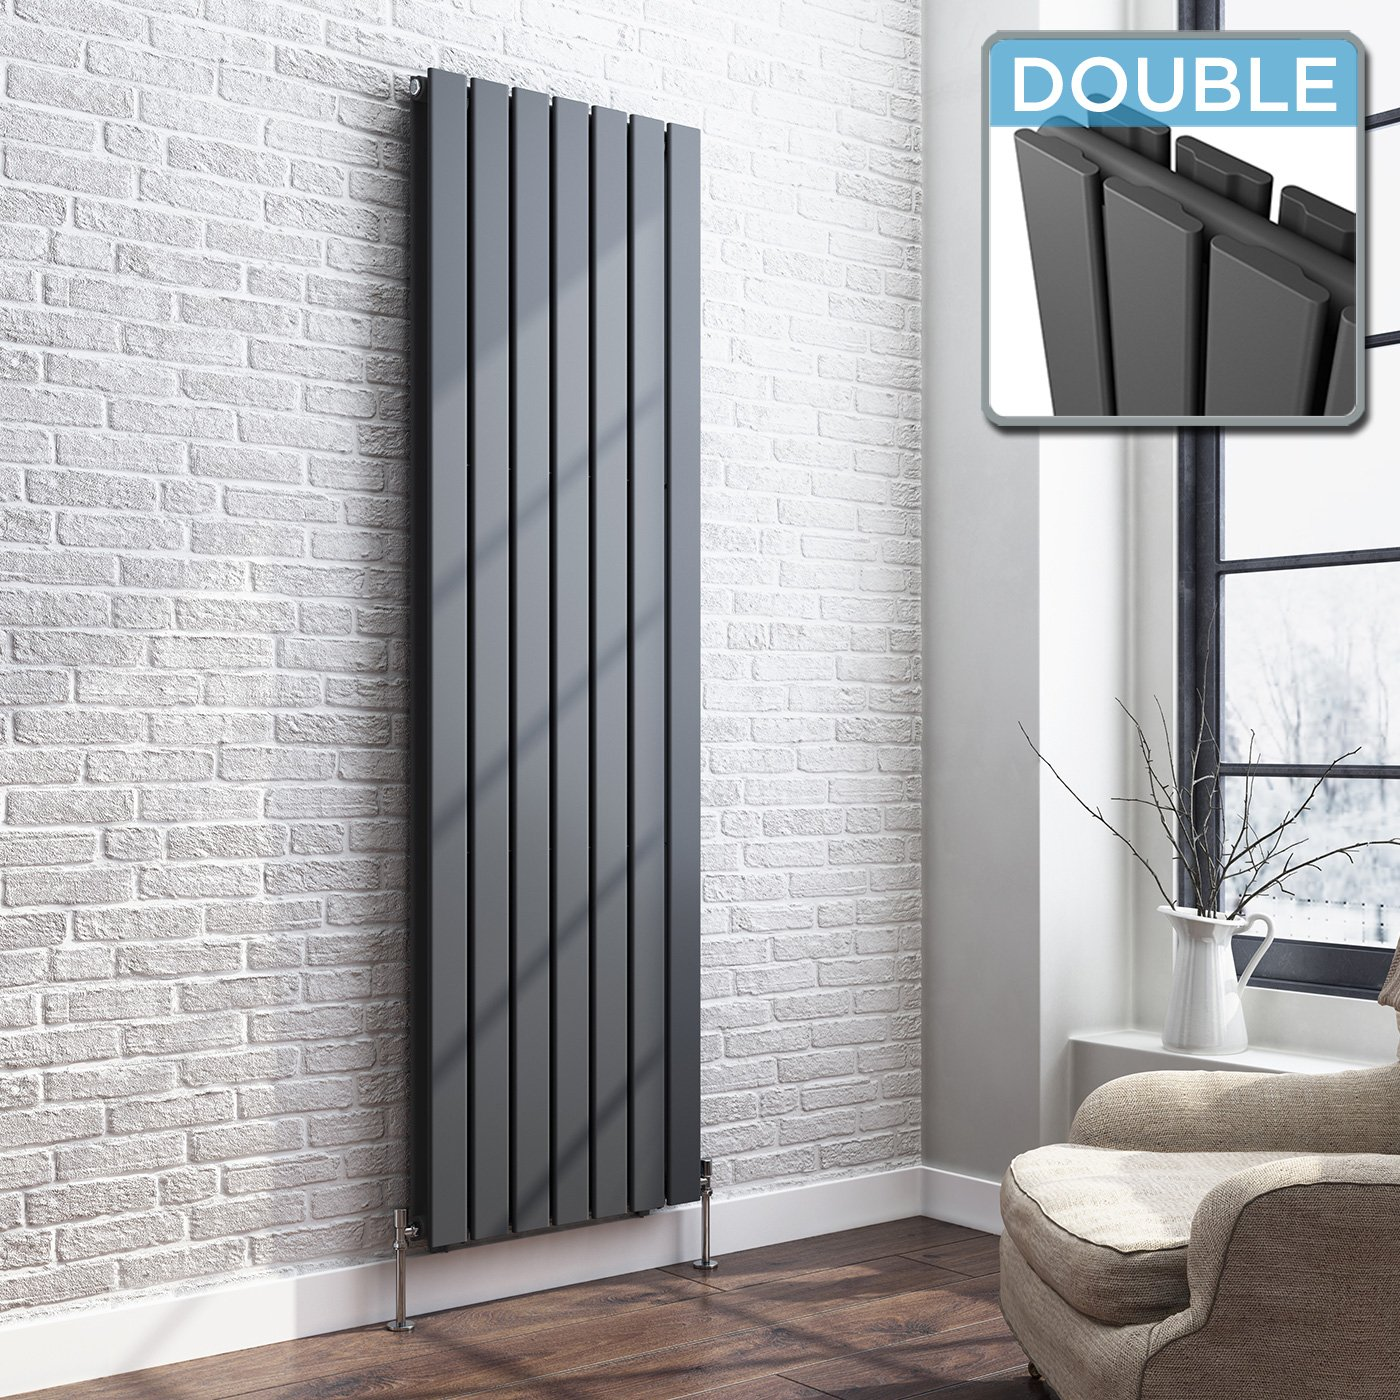 iBathUK 1800 x 300 Vertical Column Designer Radiator Anthracite Double Flat Panel